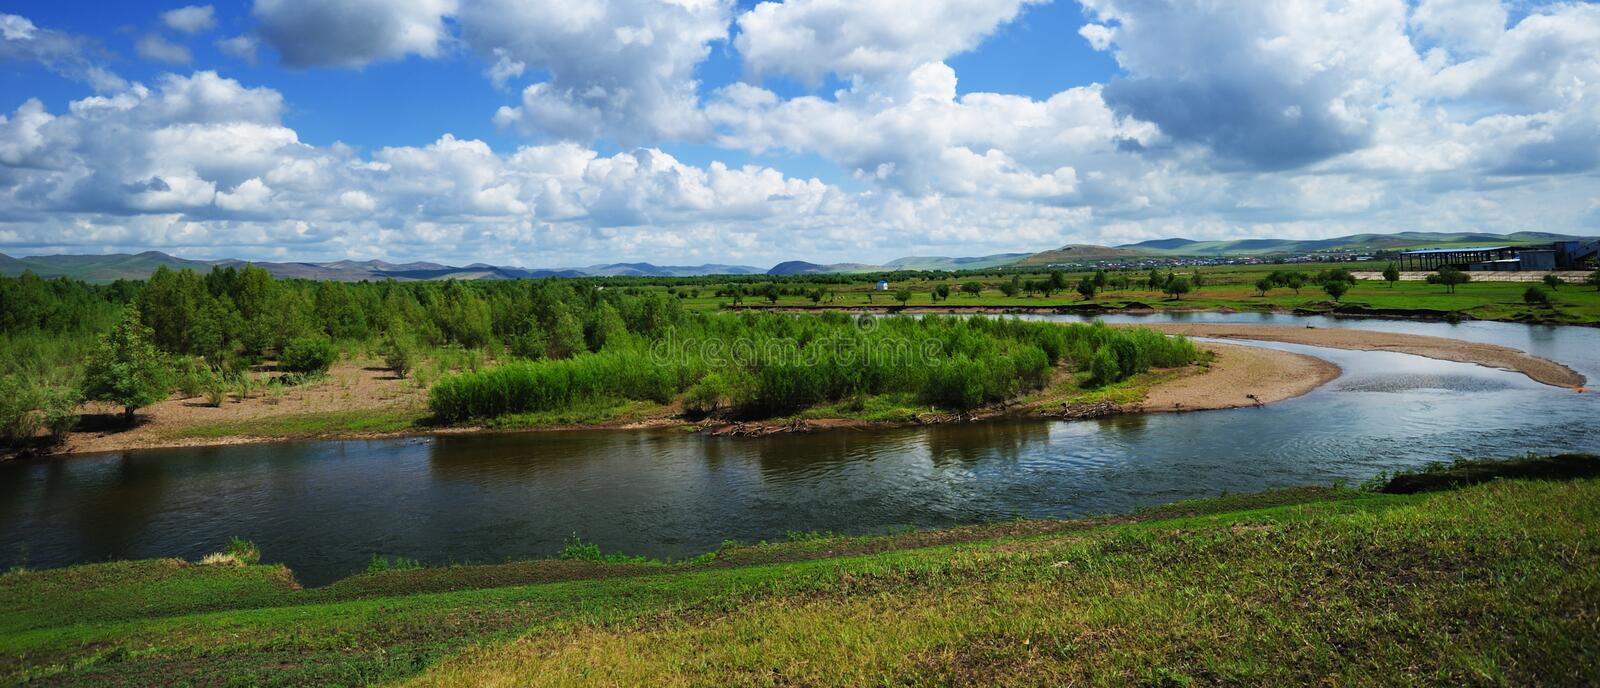 Download Gen River, Mongolia Province, China Stock Image - Image: 24826709